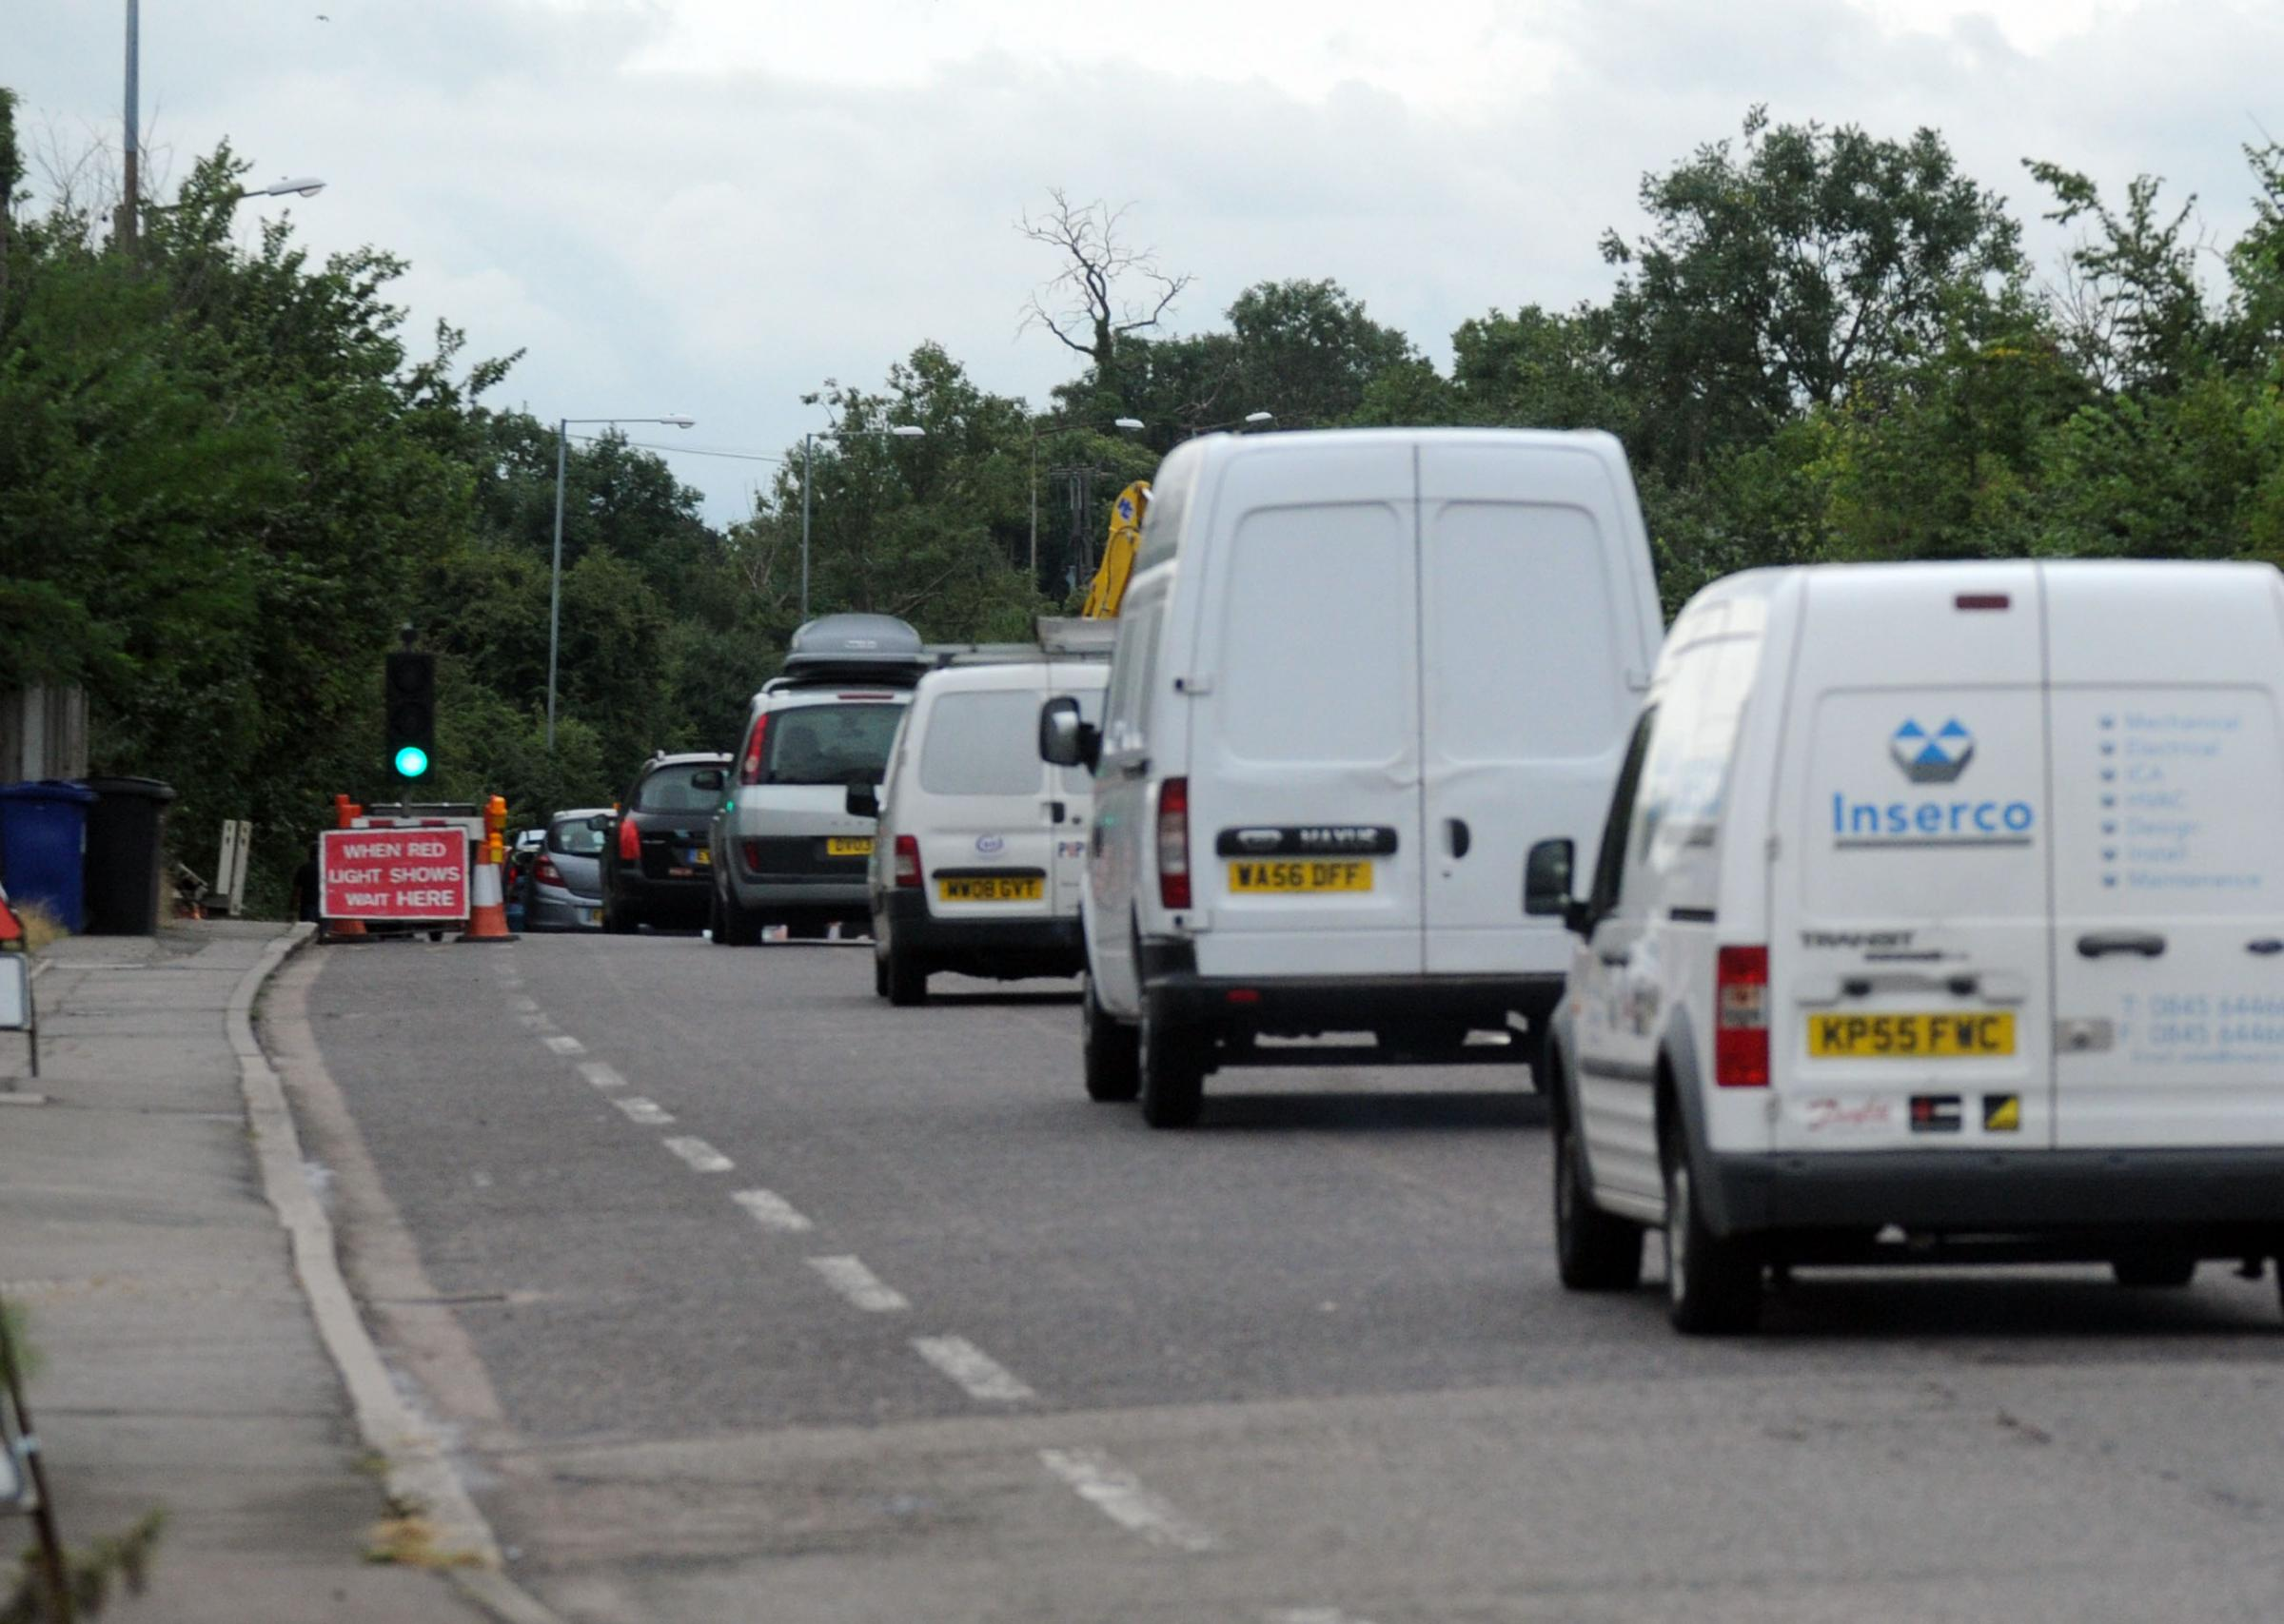 Tailbacks – traffic queuing at temporary lights set up by workers hooking up power to the traveller site